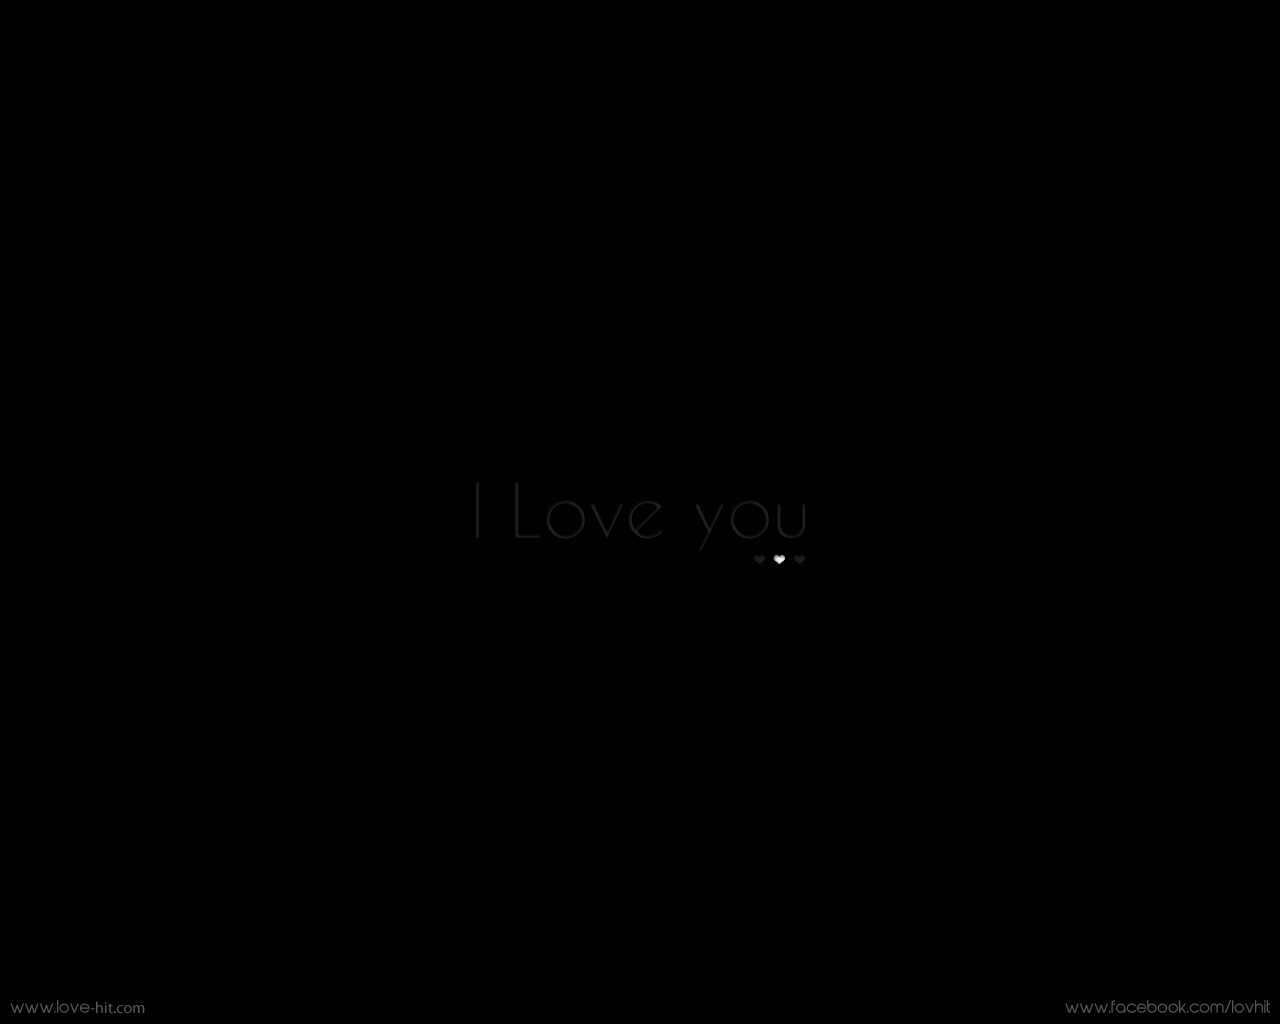 Love Wallpaper Black Background : I Love you- black background